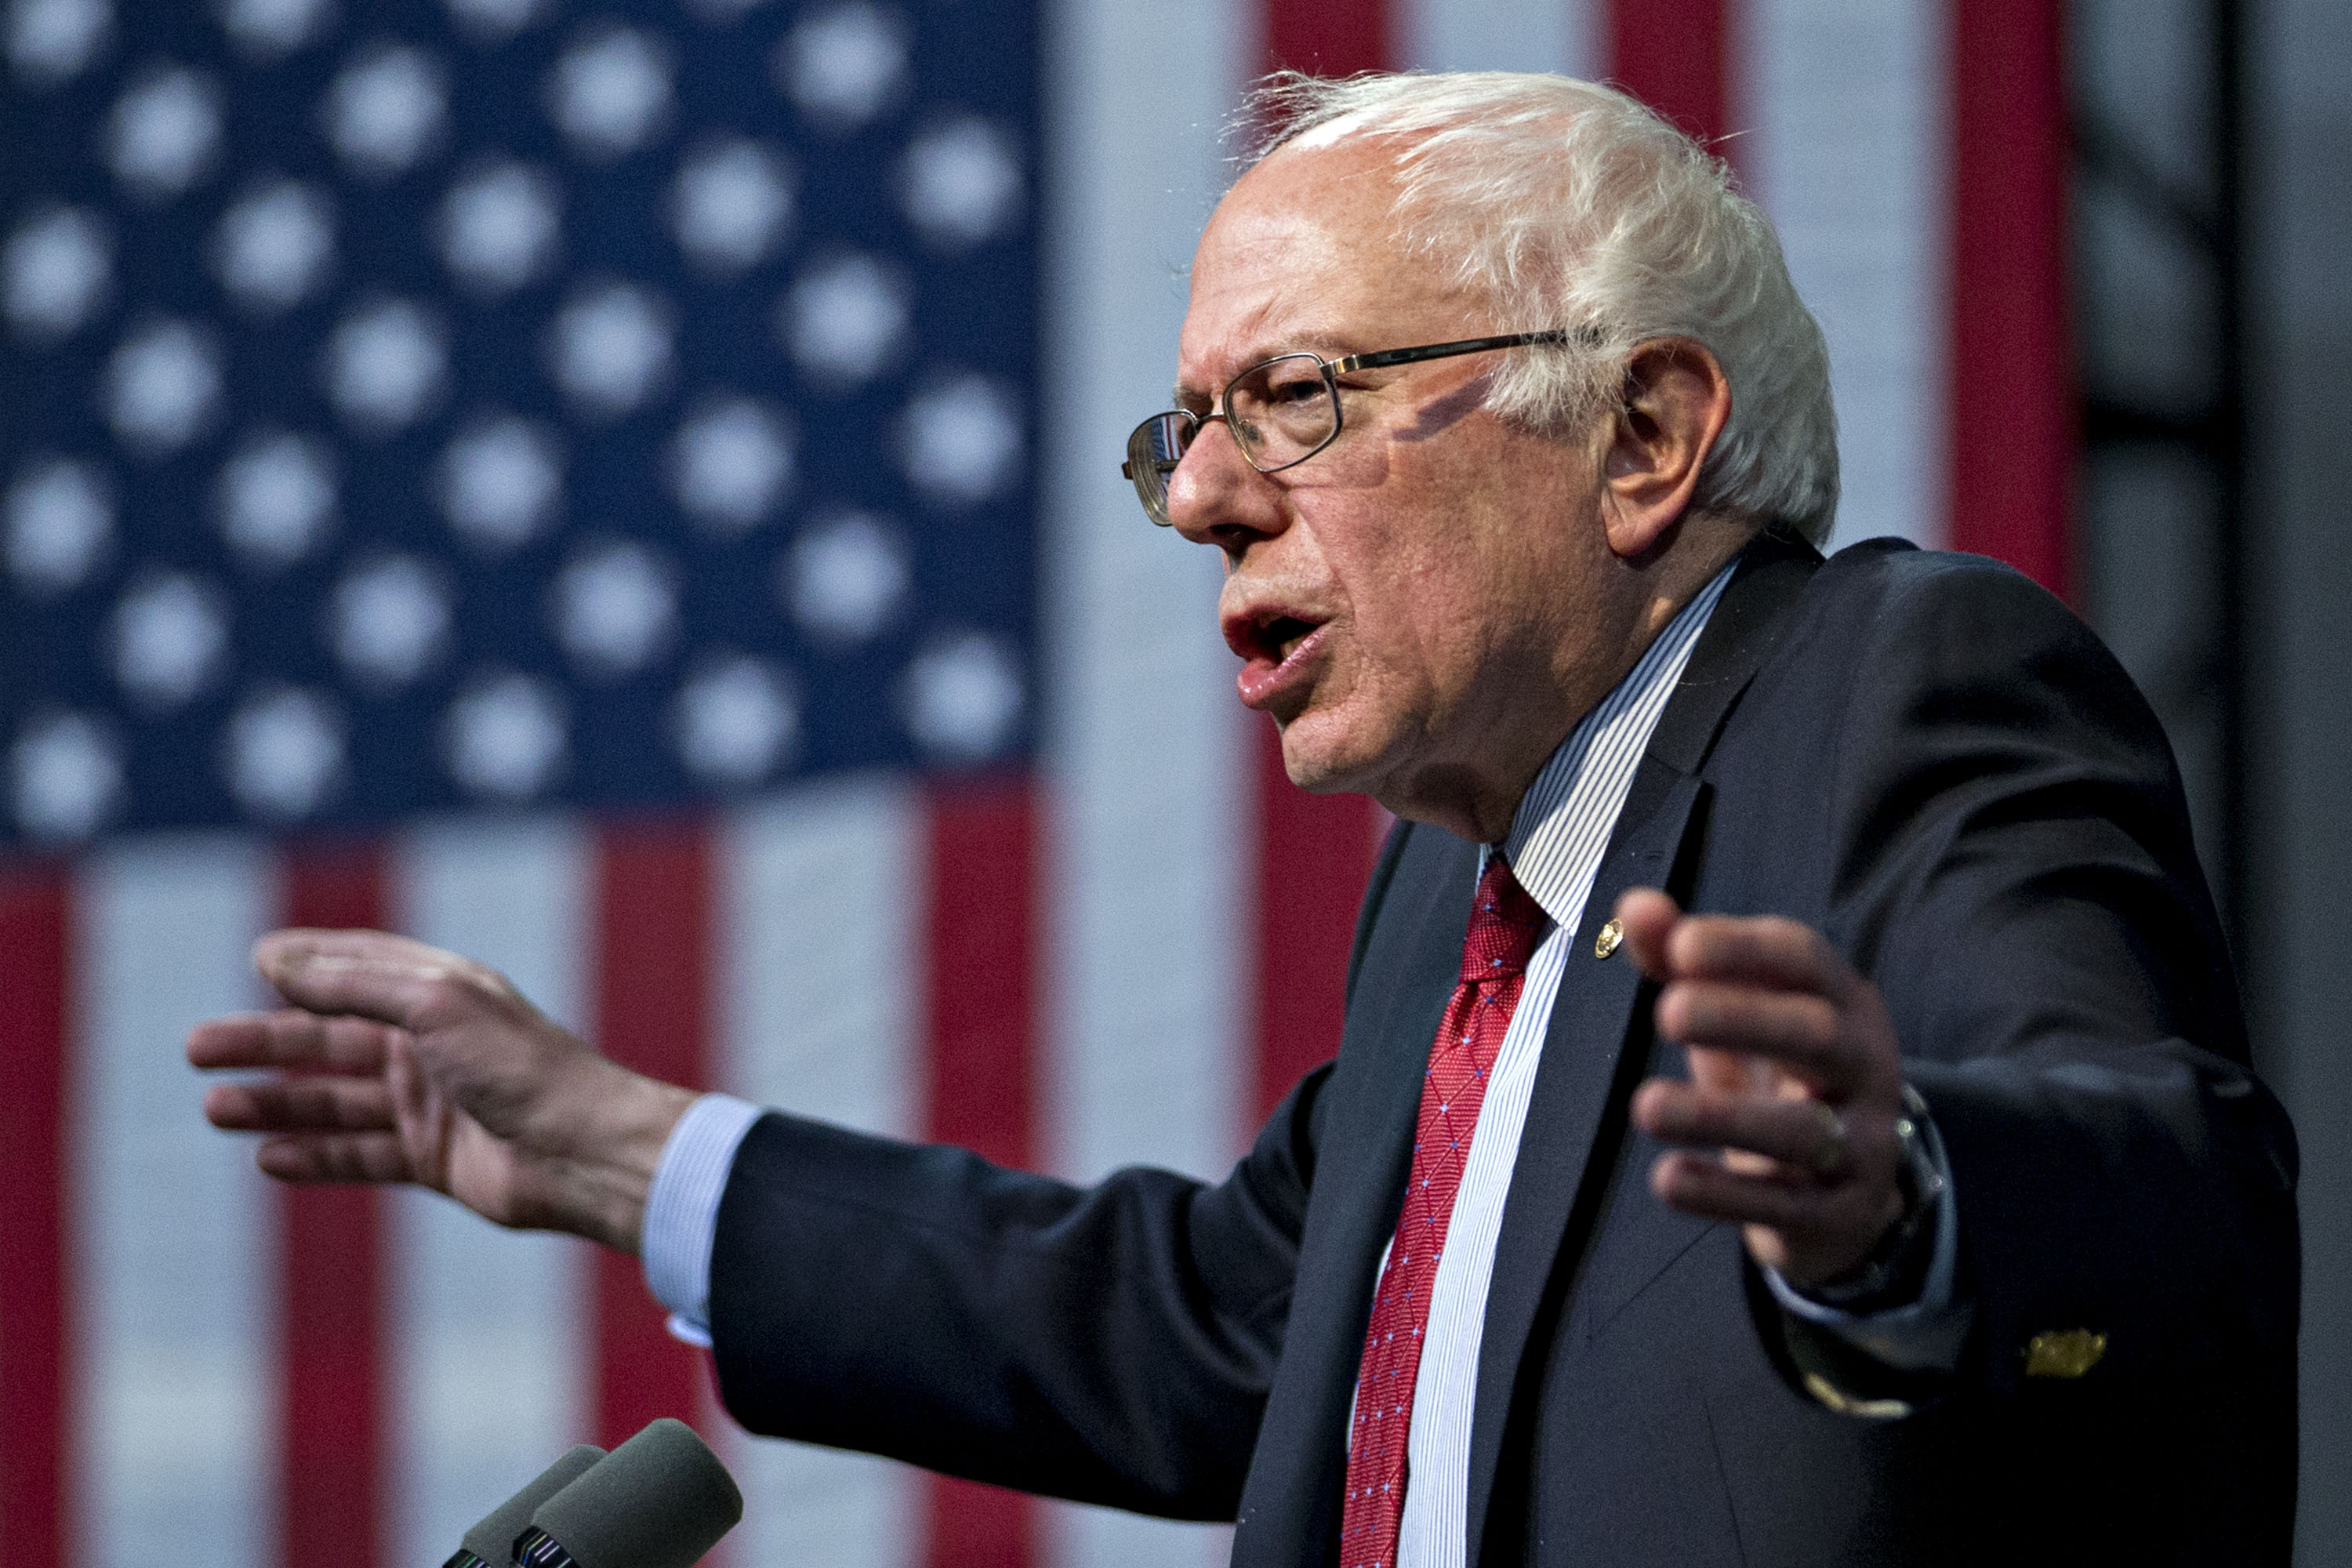 Bernie Sanders during a campaign concert and rally in Henderson, Nevada, on Feb. 19, 2016.